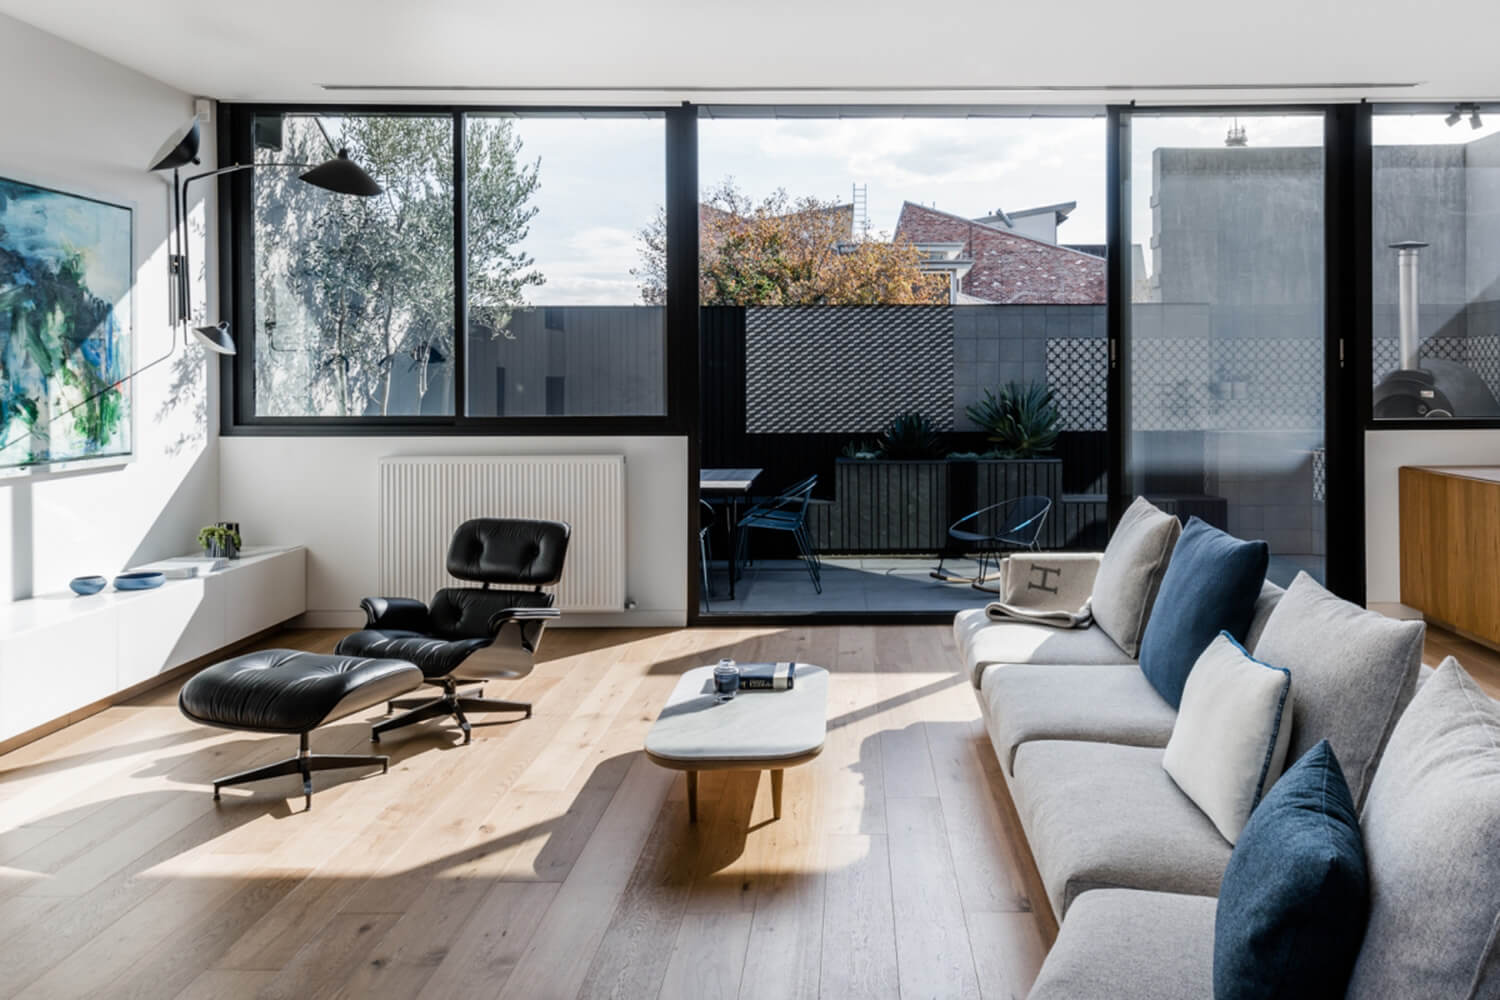 est living ha architects leveson street house.06